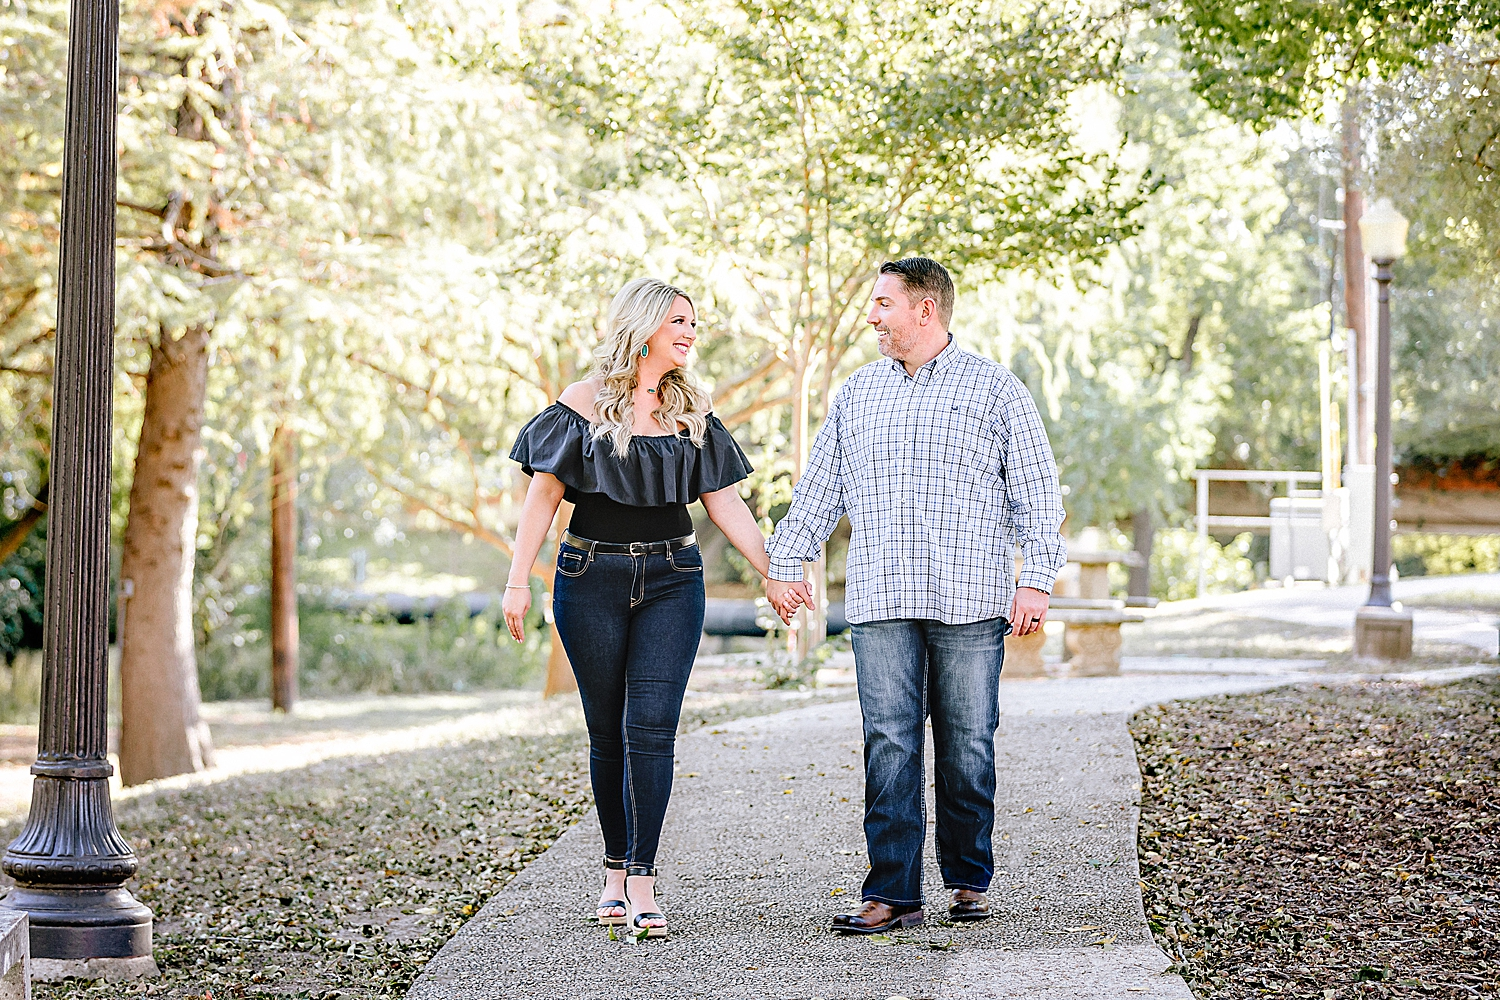 Engagement-Photo-Session-University-of-Incarnate-Word-UIW-San-Antonio-Texas-Carly-Barton-Photography_0028.jpg